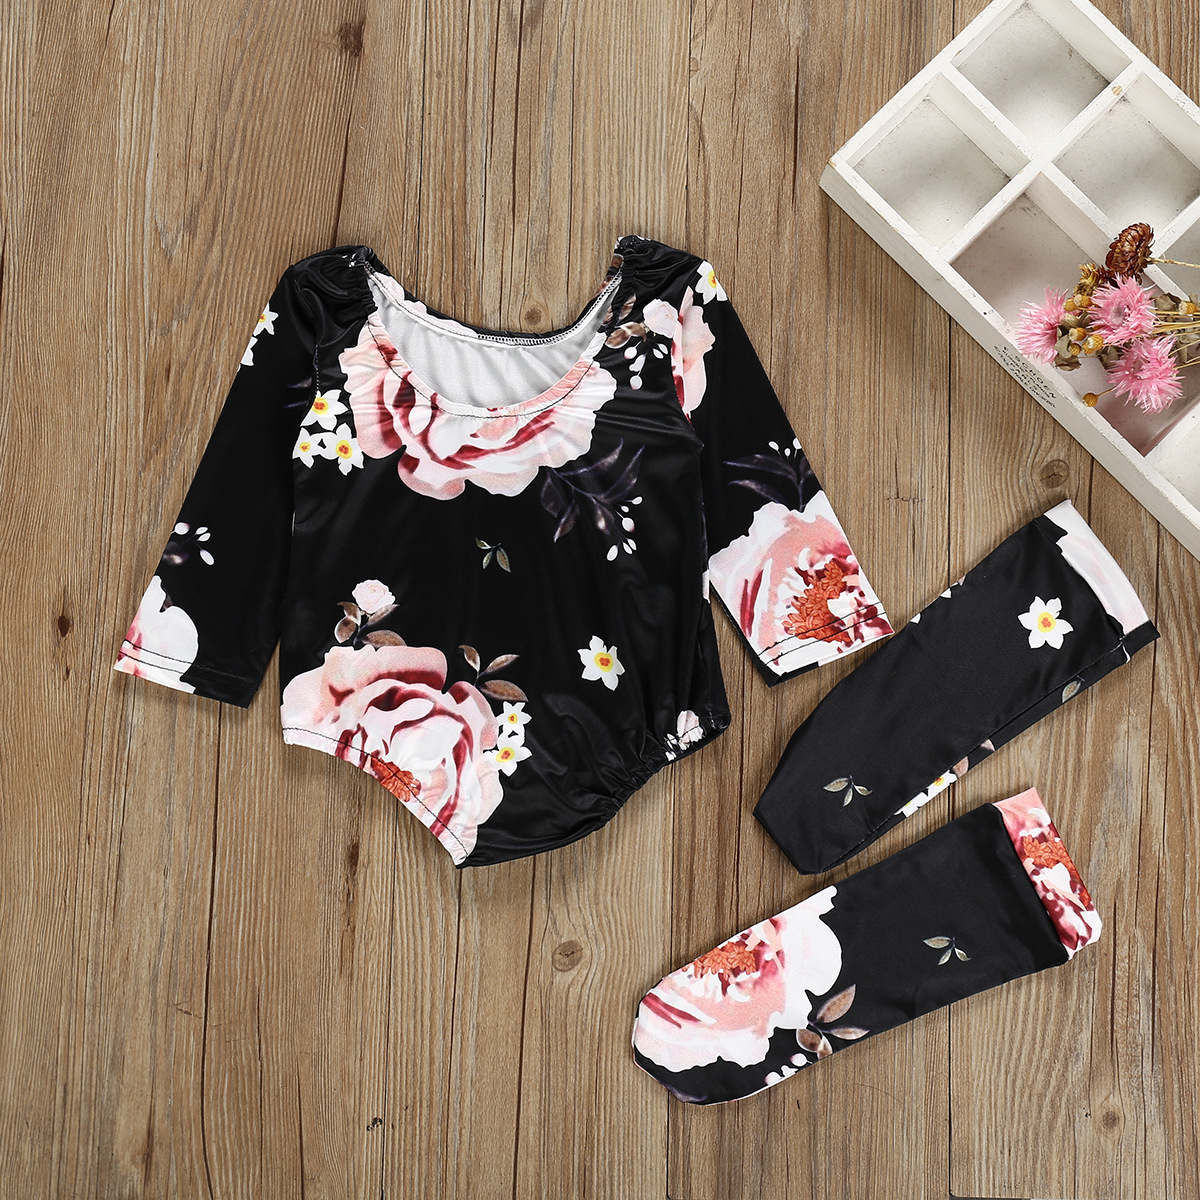 newborn baby girls long sleeve camo romper 2020 baby bodysuit set